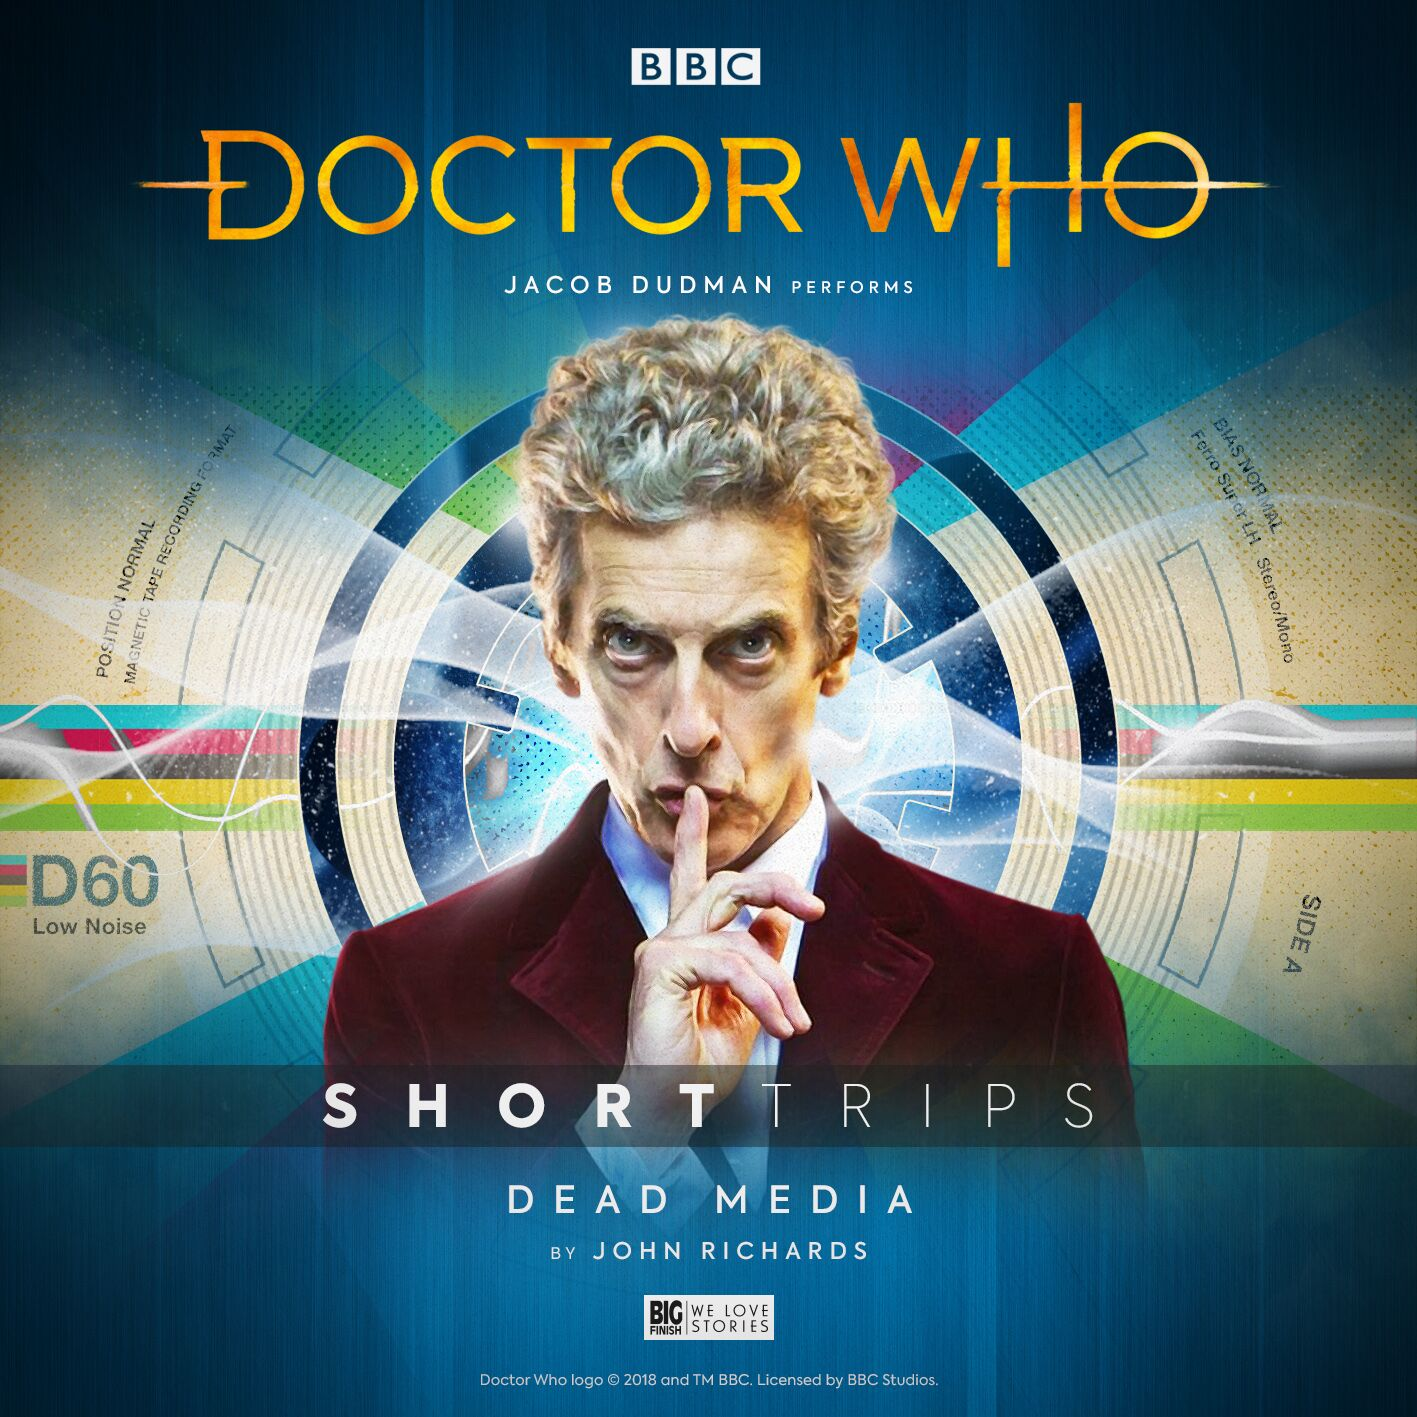 Watch Dr Who Christmas Special 2020 Dr Who 2020 Christmas Special Watch Order | Tgbwrx.newyear2020.site